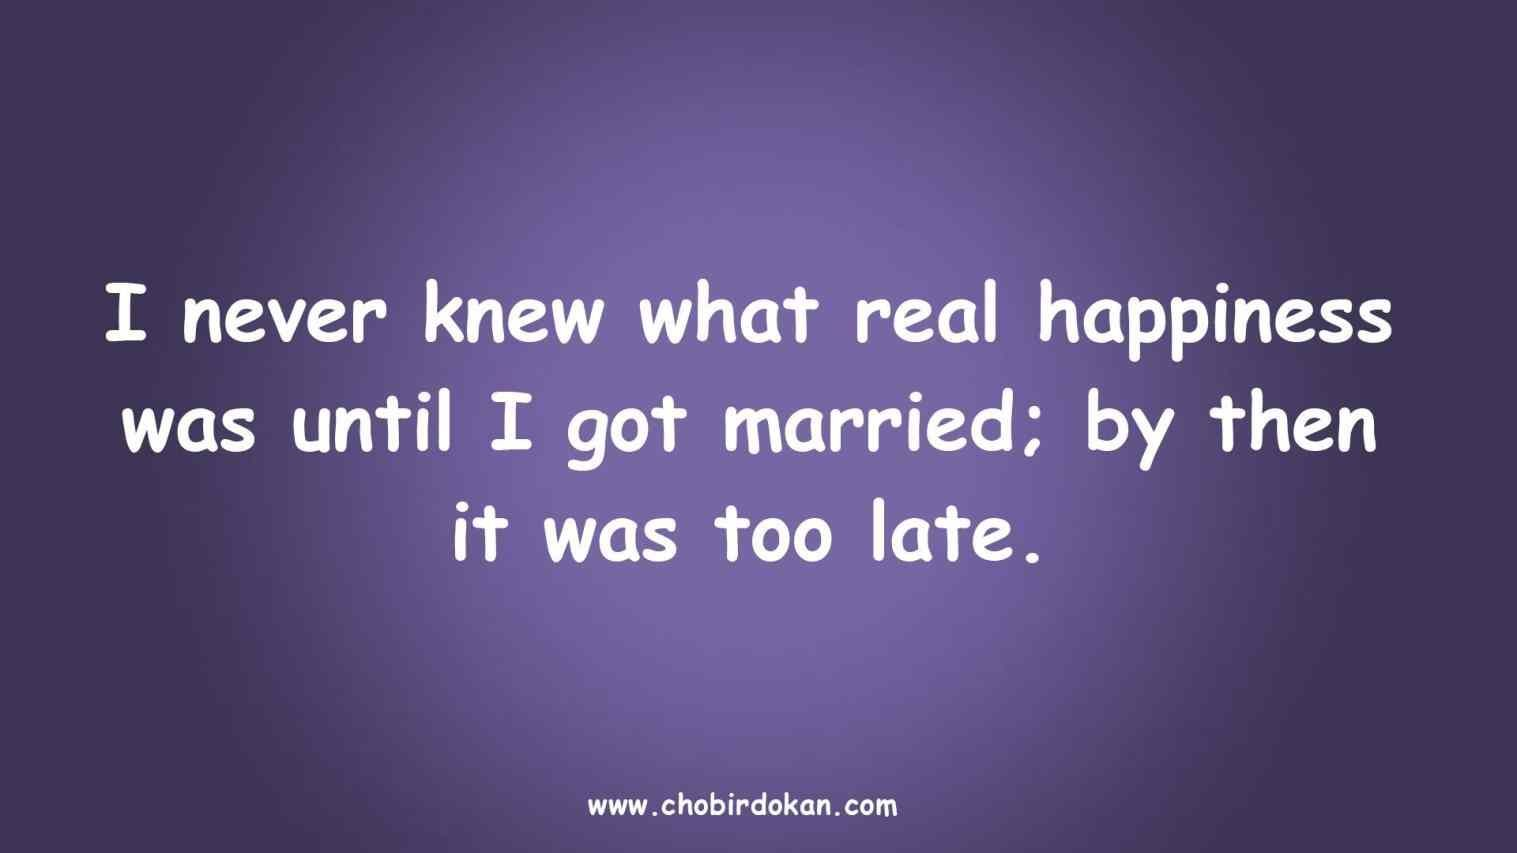 A Sense Of Humor Funny Images Happiness Chic Happy Married Funny Humorous Marriage Quotes Images Marriage Quotes Funny Marriage Quotes Marriage Quotes Images